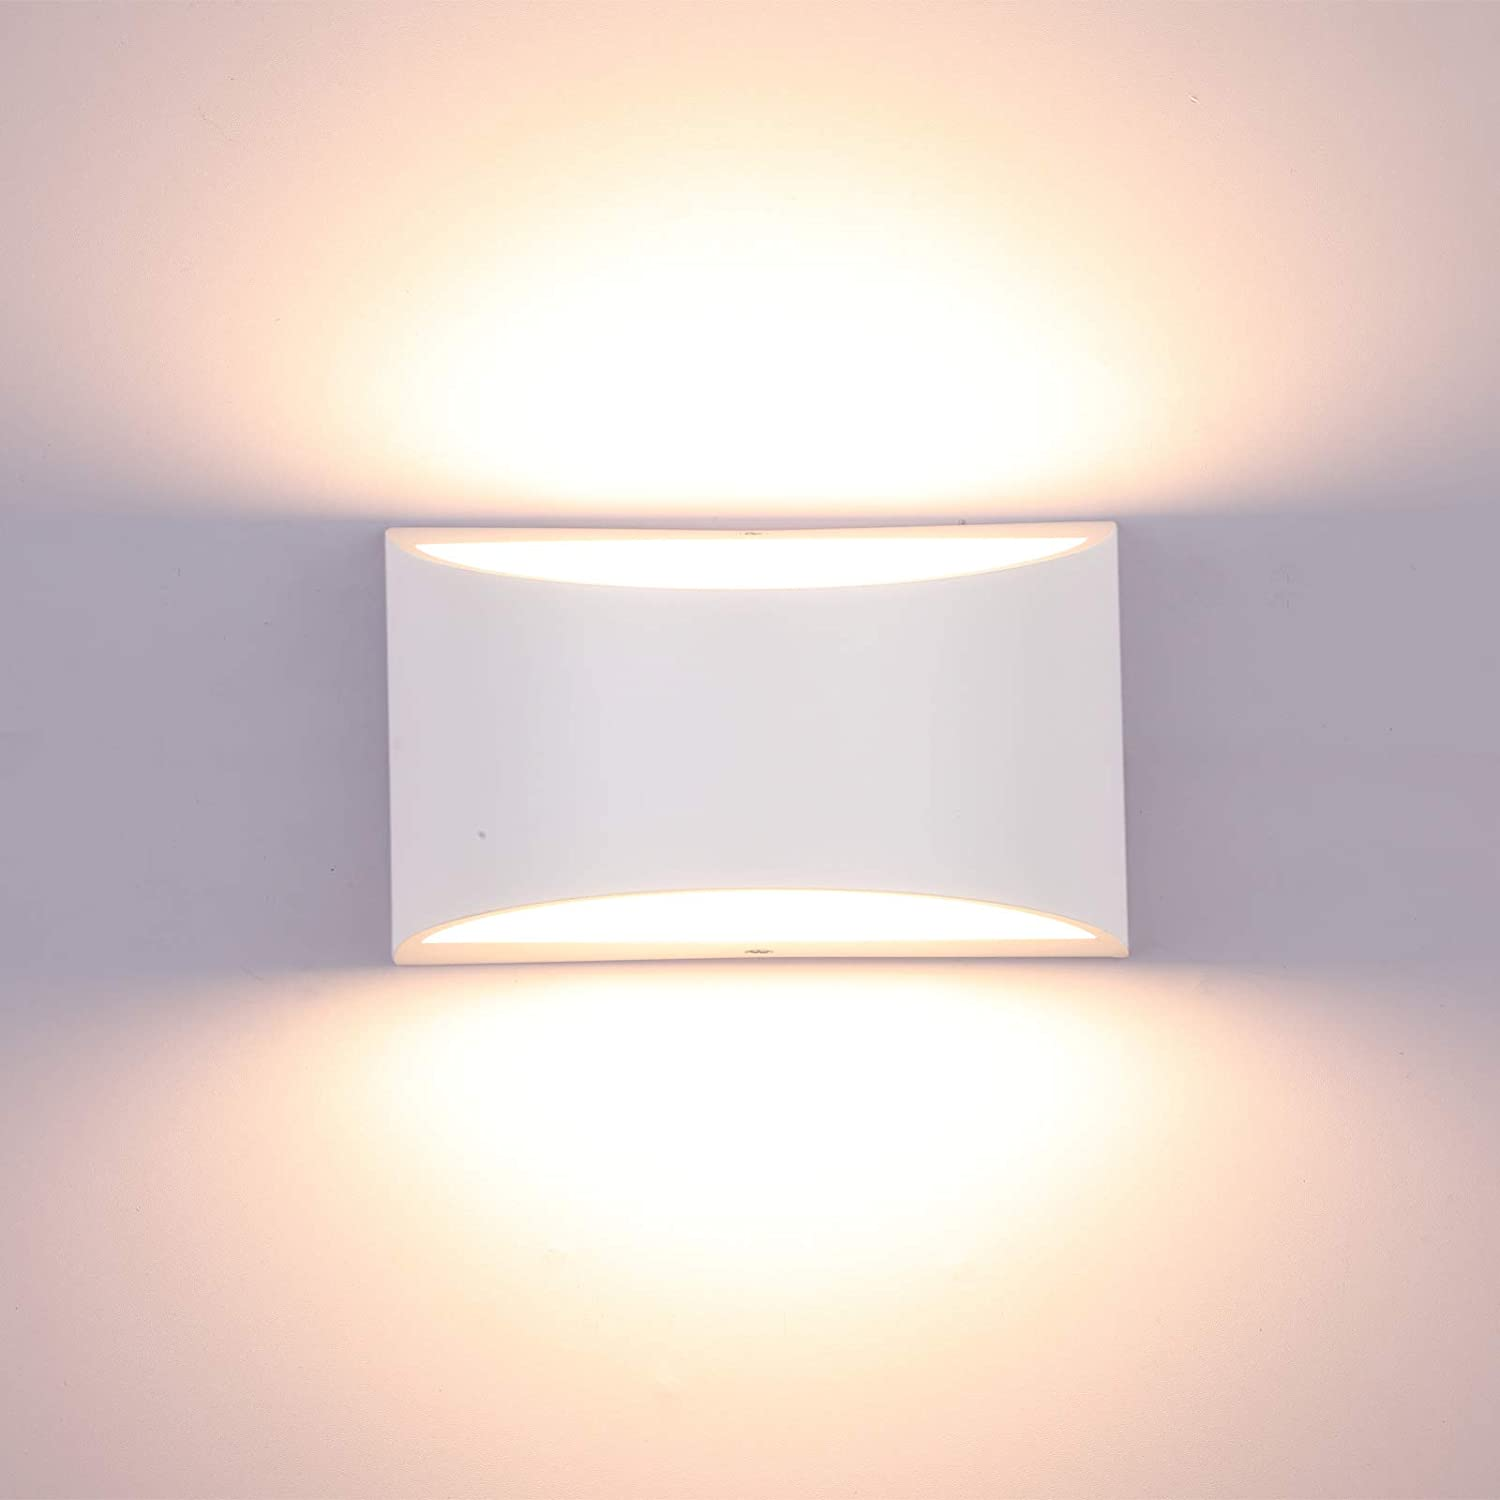 Lightess Dimmable Wall Sconces Modern LED Wall Lamp 10W Indoor Wall Sconce  Up Down Hallway Wall Mounted Light Fixtures for Bedroom Living Room, Warm